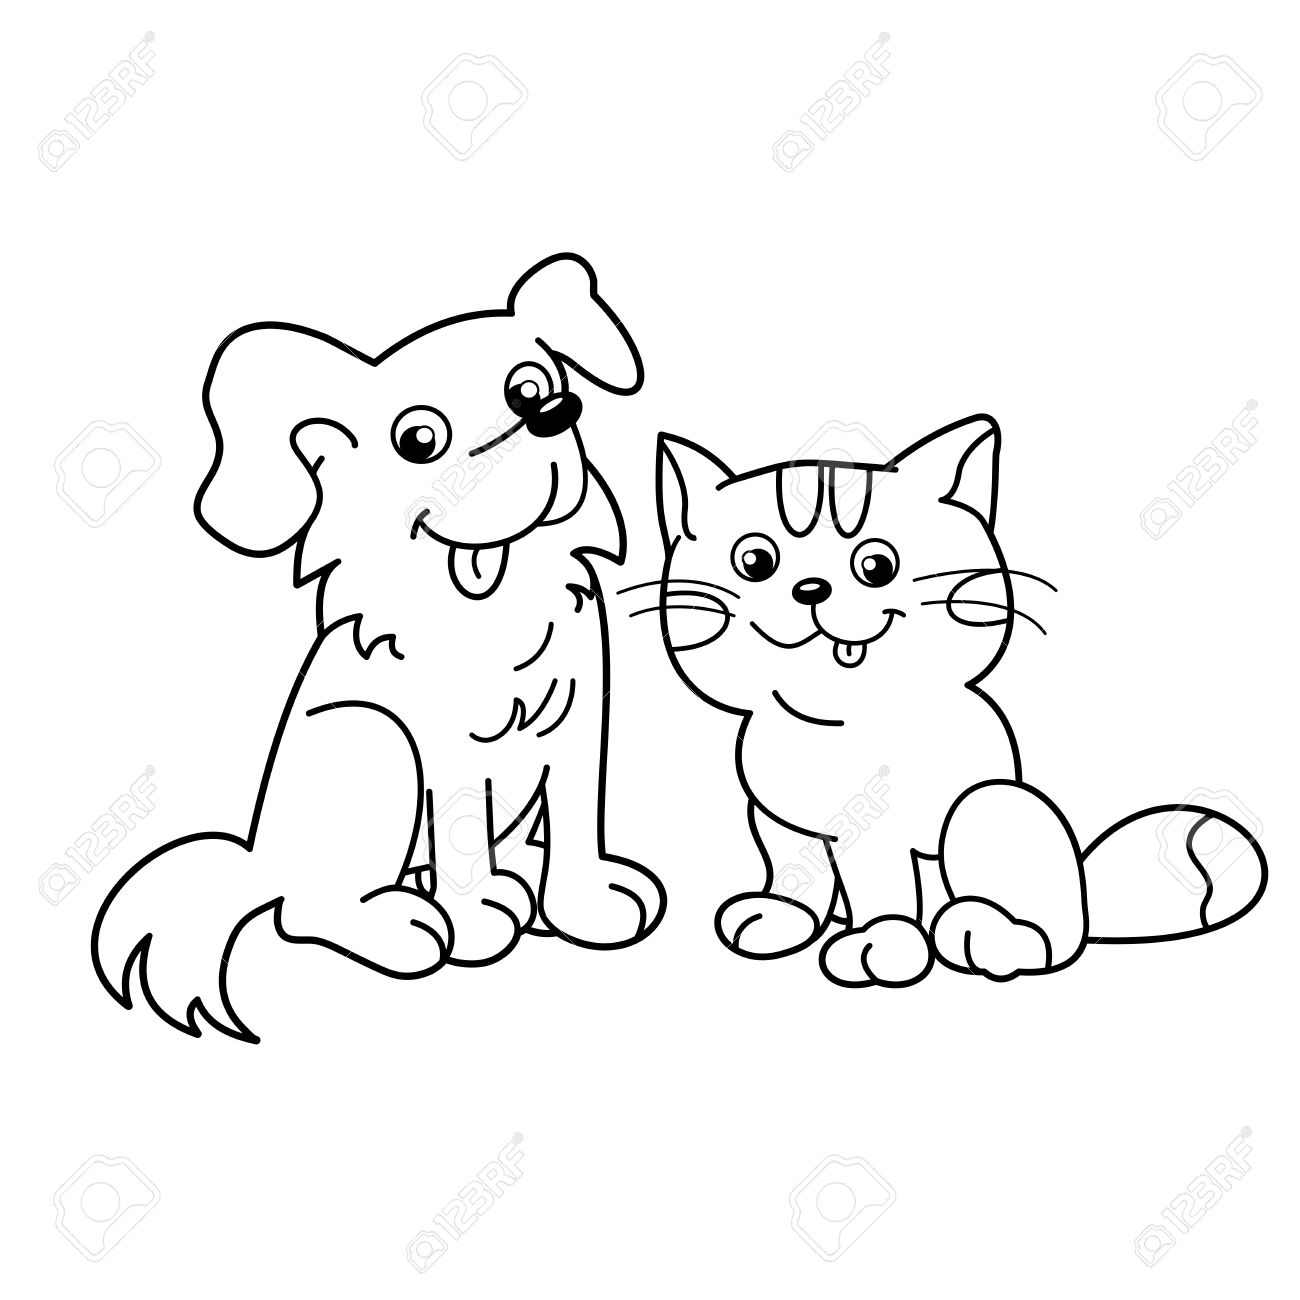 1300x1300 Coloring Page Outline Of Cartoon Cat With Dog. Pets. Coloring